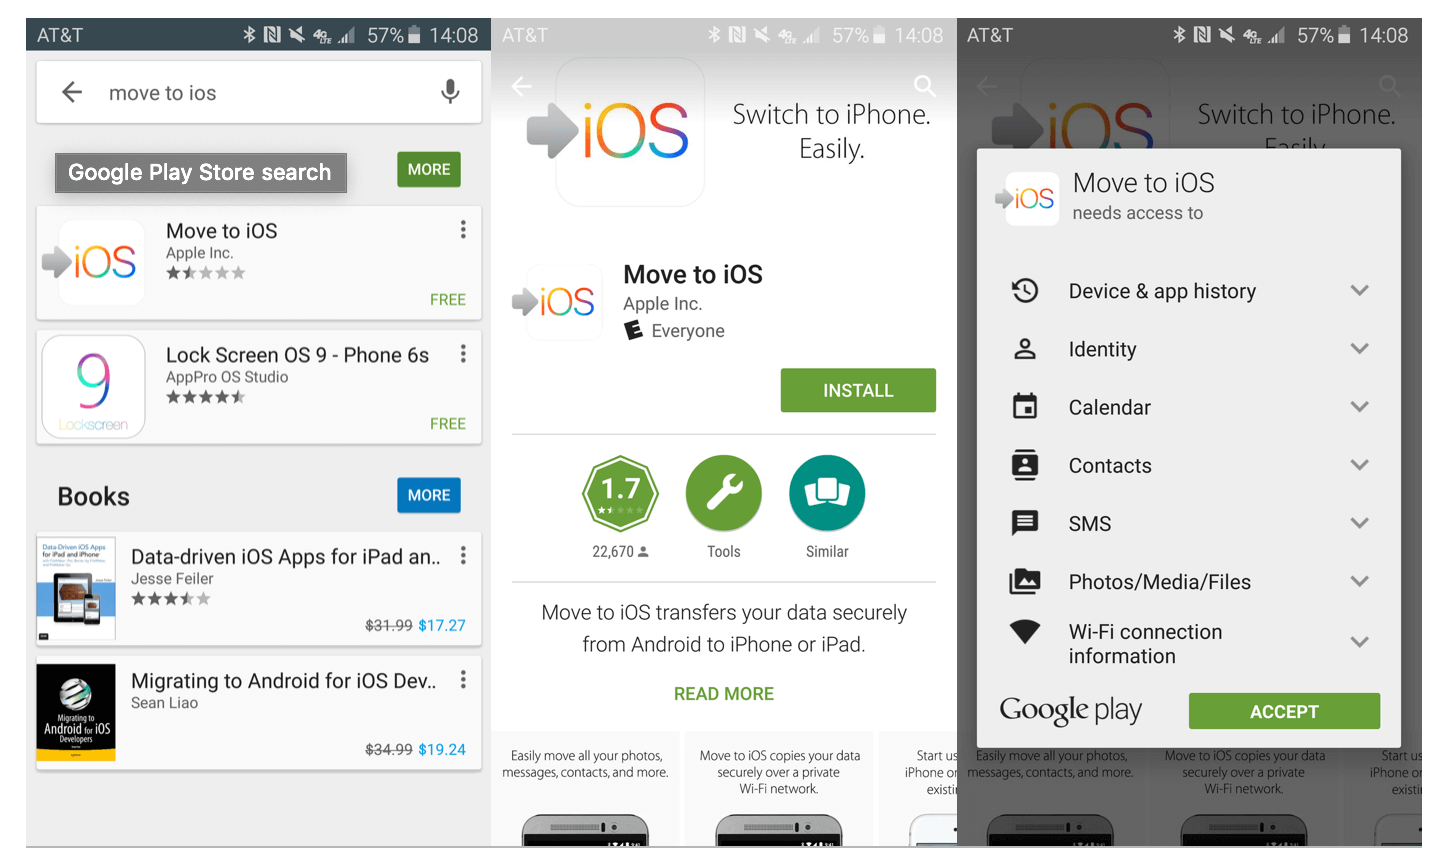 download the Move to iOS